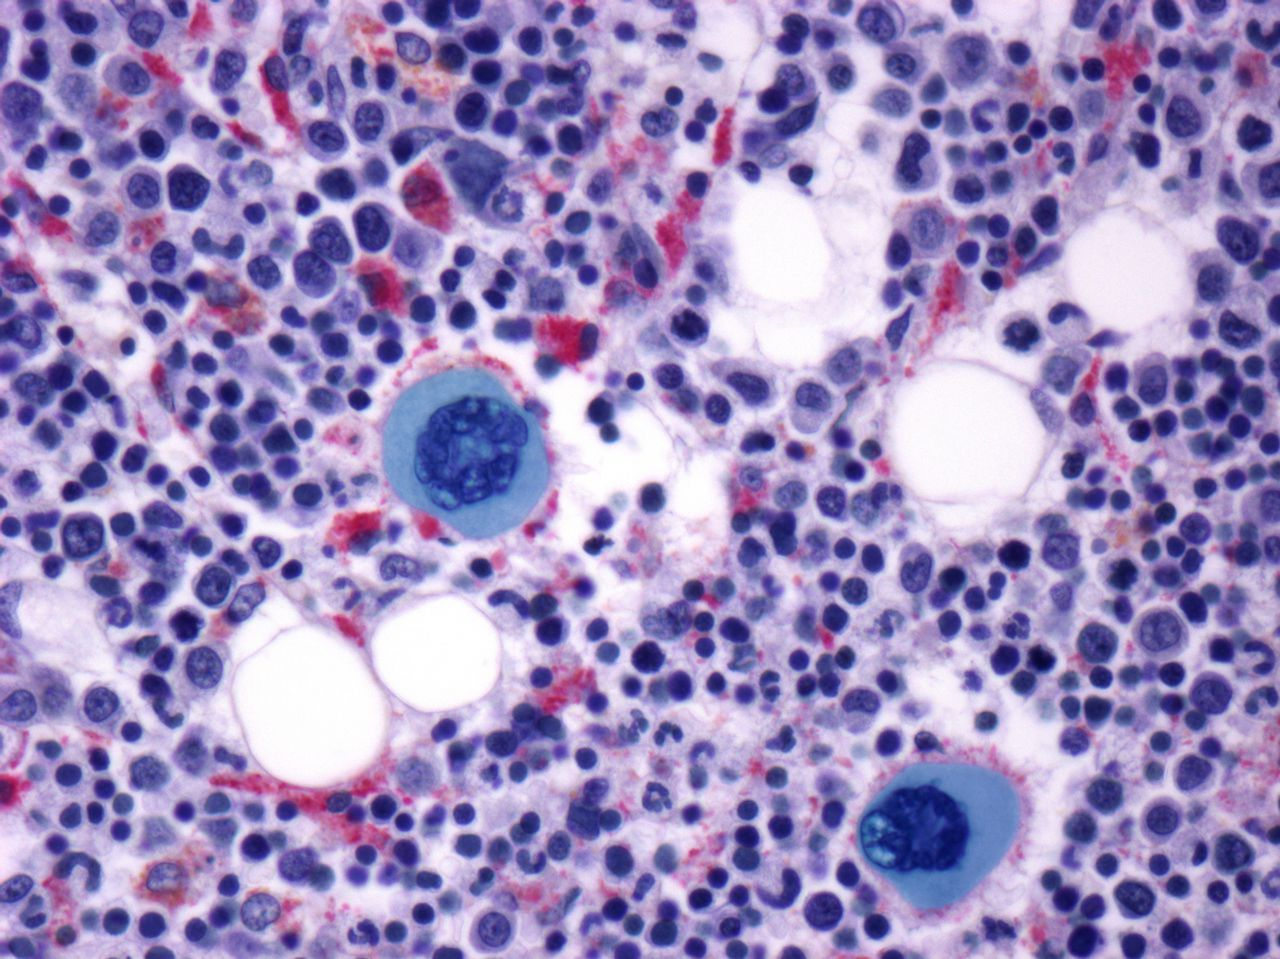 Bone marrow. Light micrograph of a section through bone marrow showing two megakaryocytes (blue). These cells produce platelets. Magnification: x400 when printed at 10 centimetres wide.